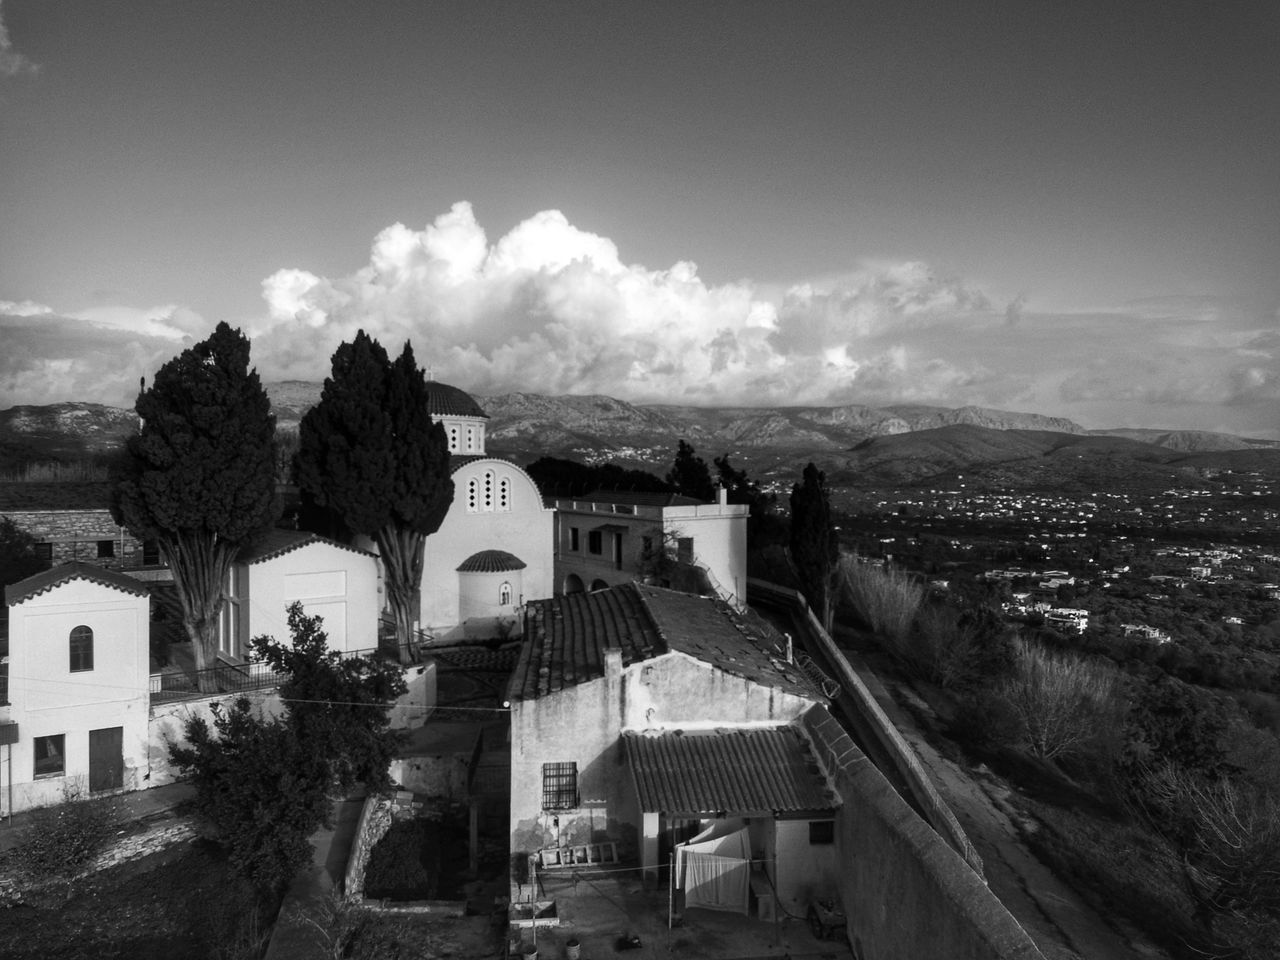 Blackandwhite Photography Religious Architecture Aerial Shot Dronephotography Monastery Church Architecture Morning Light Tranquility Religion Architecture Church Aerial View Beauty In Nature Blackandwhite Outdoors Travel Destinations Cloud - Sky Scenics